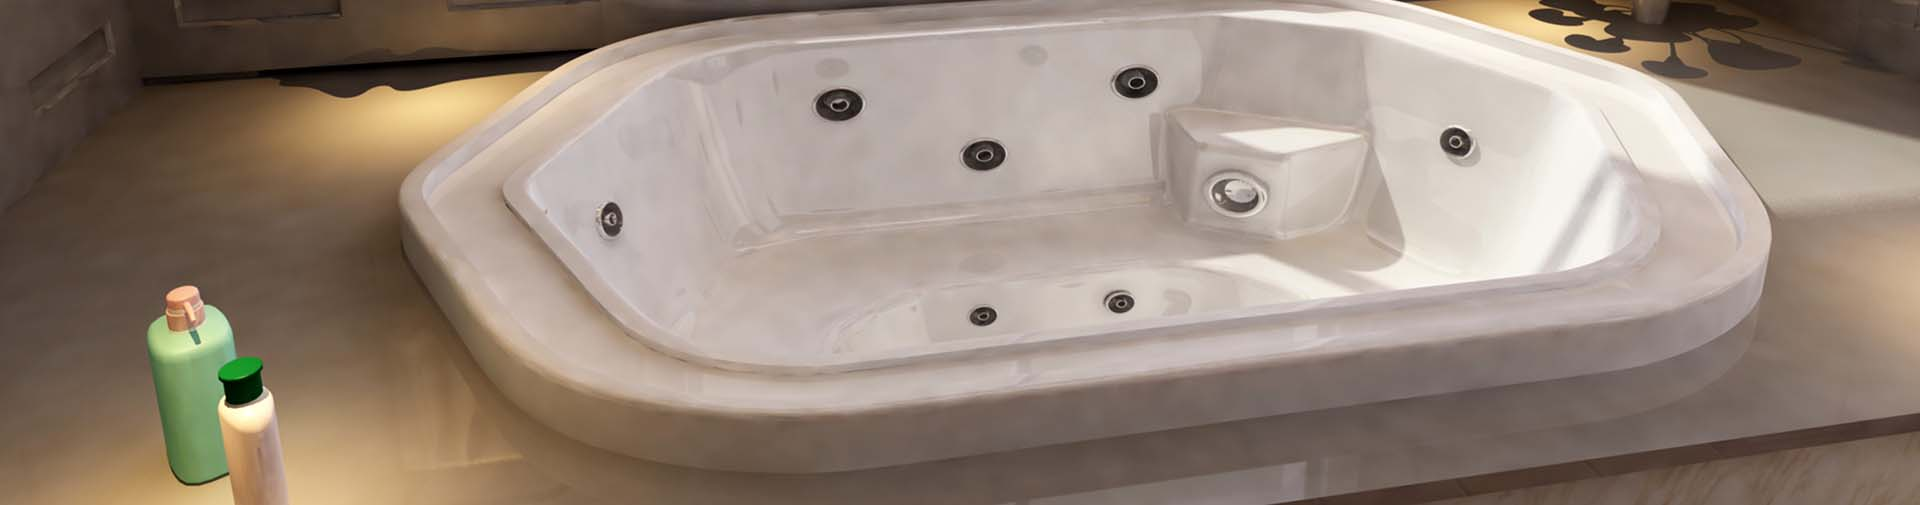 Fort Worth Plumber, Plumbing Company and Plumbing Services